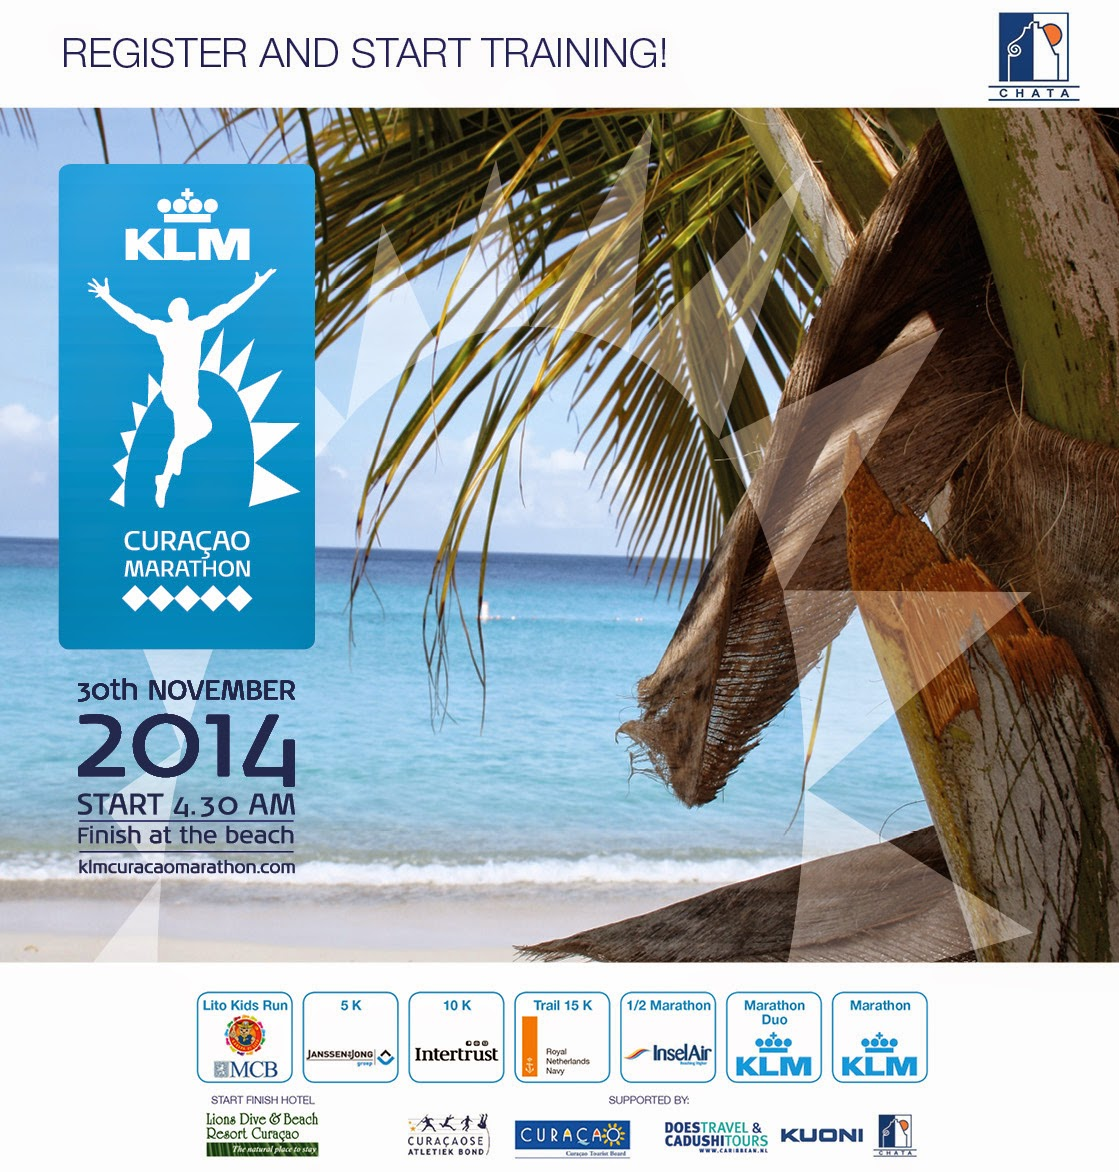 http://news.klm.com/run-in-the-sun--klm-curacao-marathon-2014-en/